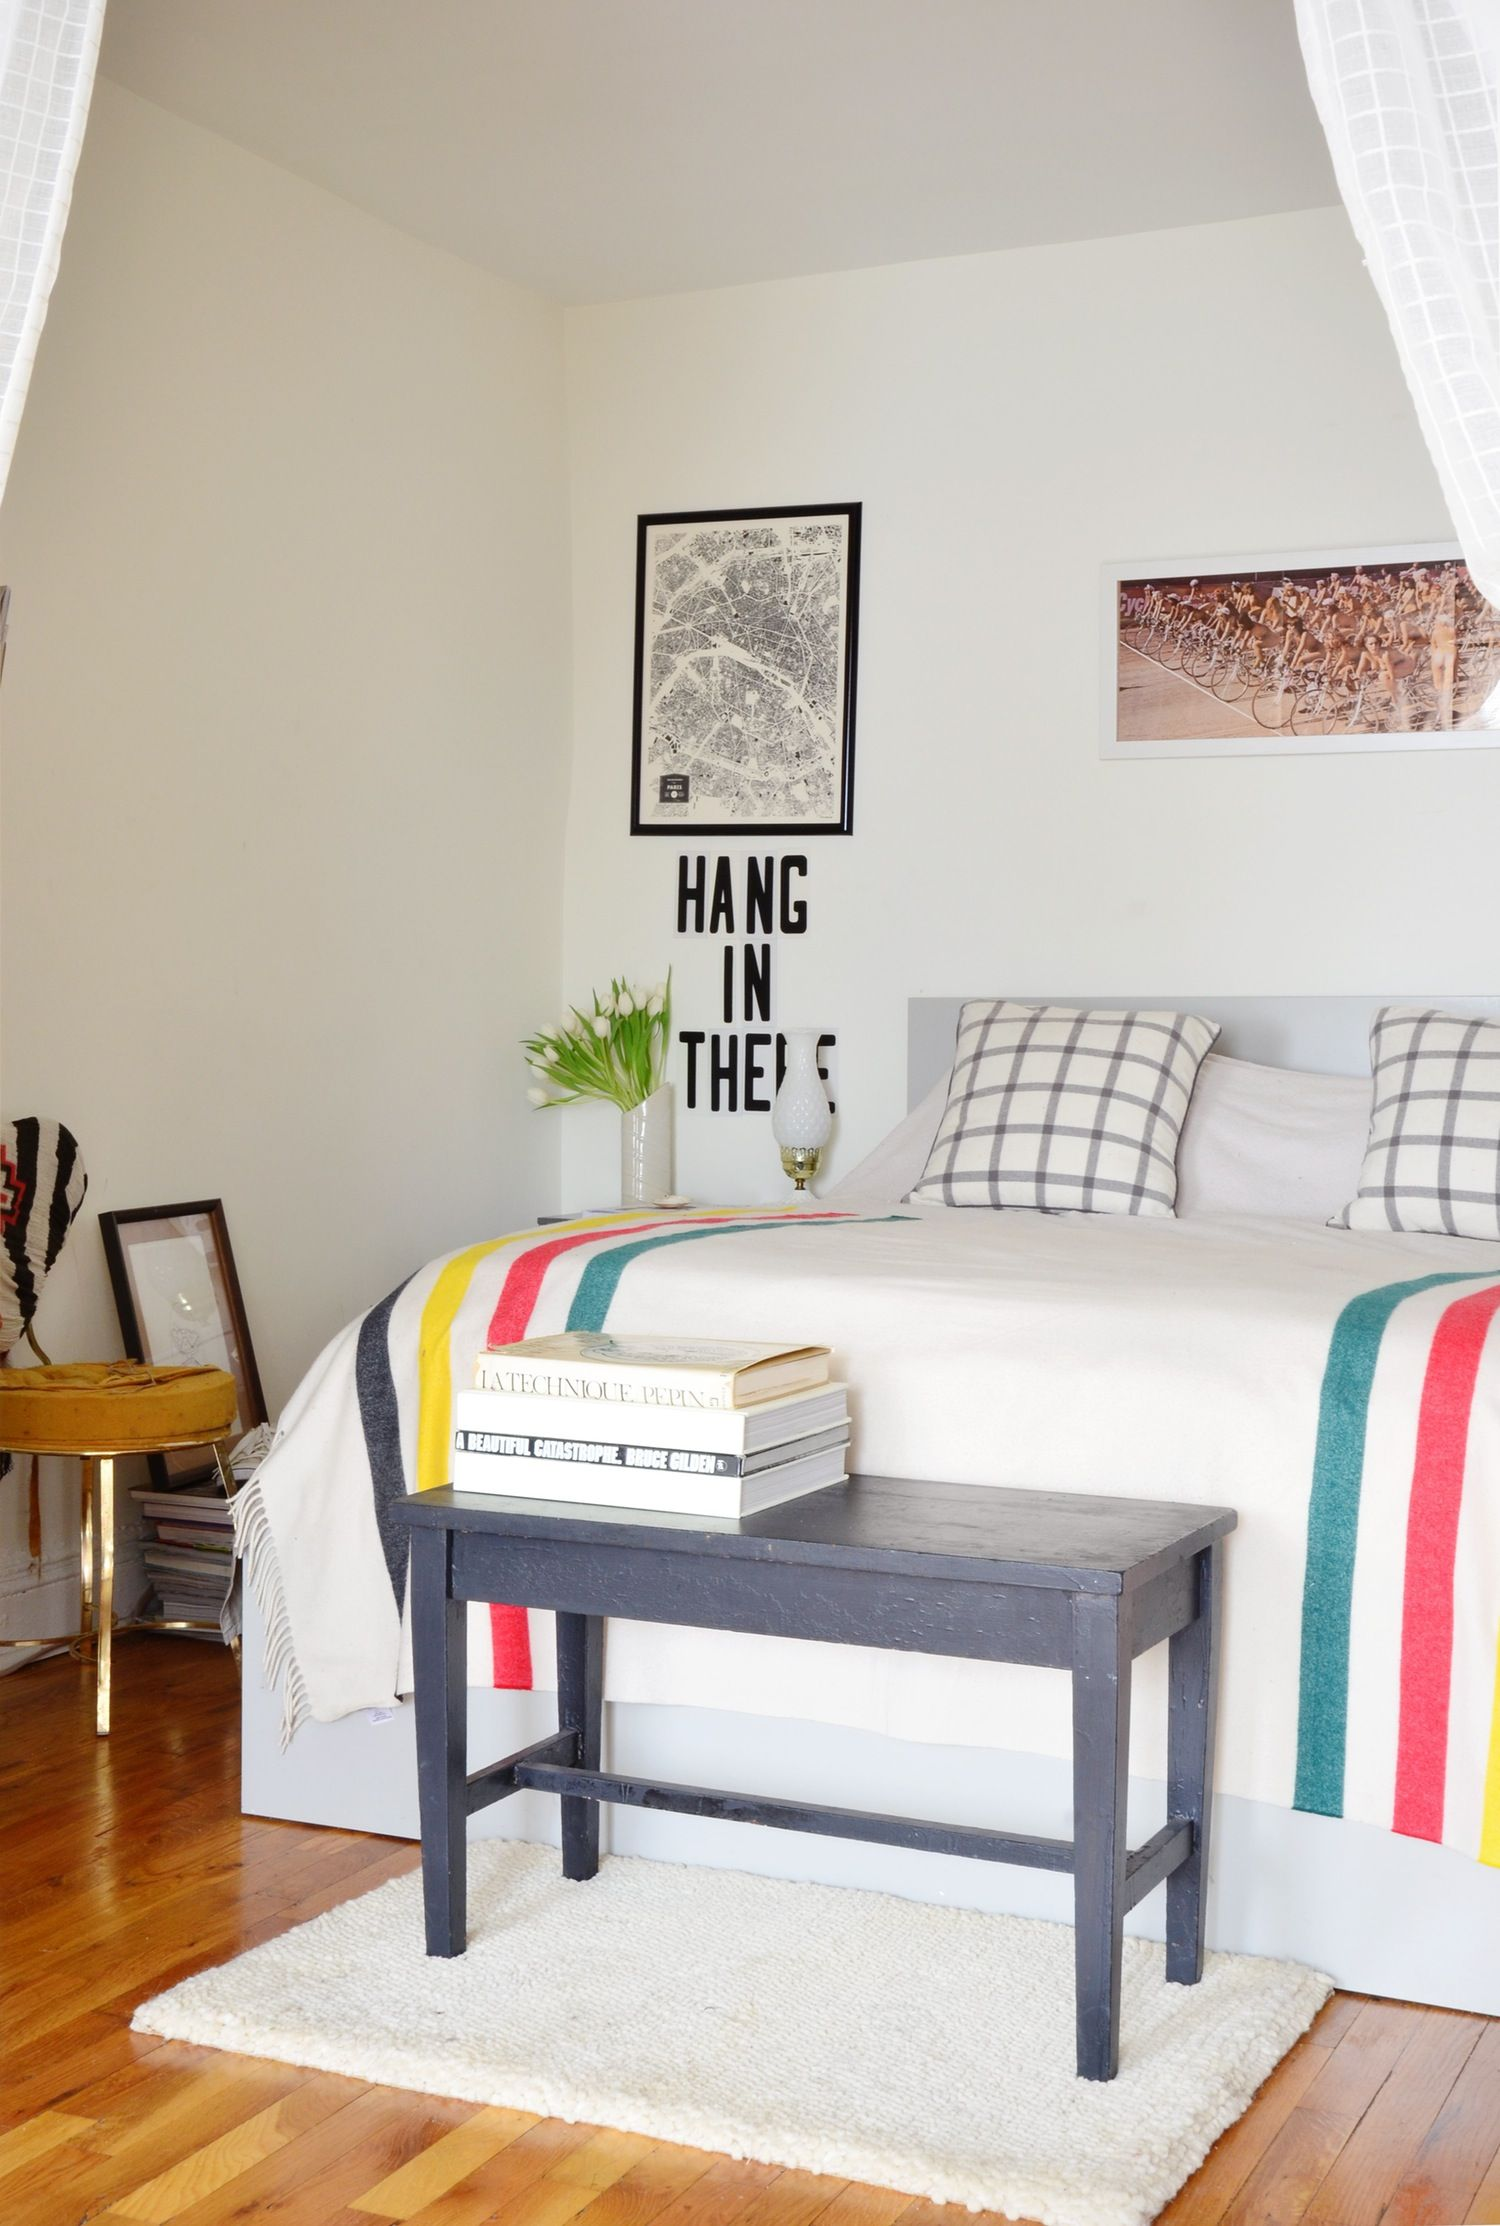 Video House Tour: 325 Sq Ft Apartment in Brooklyn | House tours ...